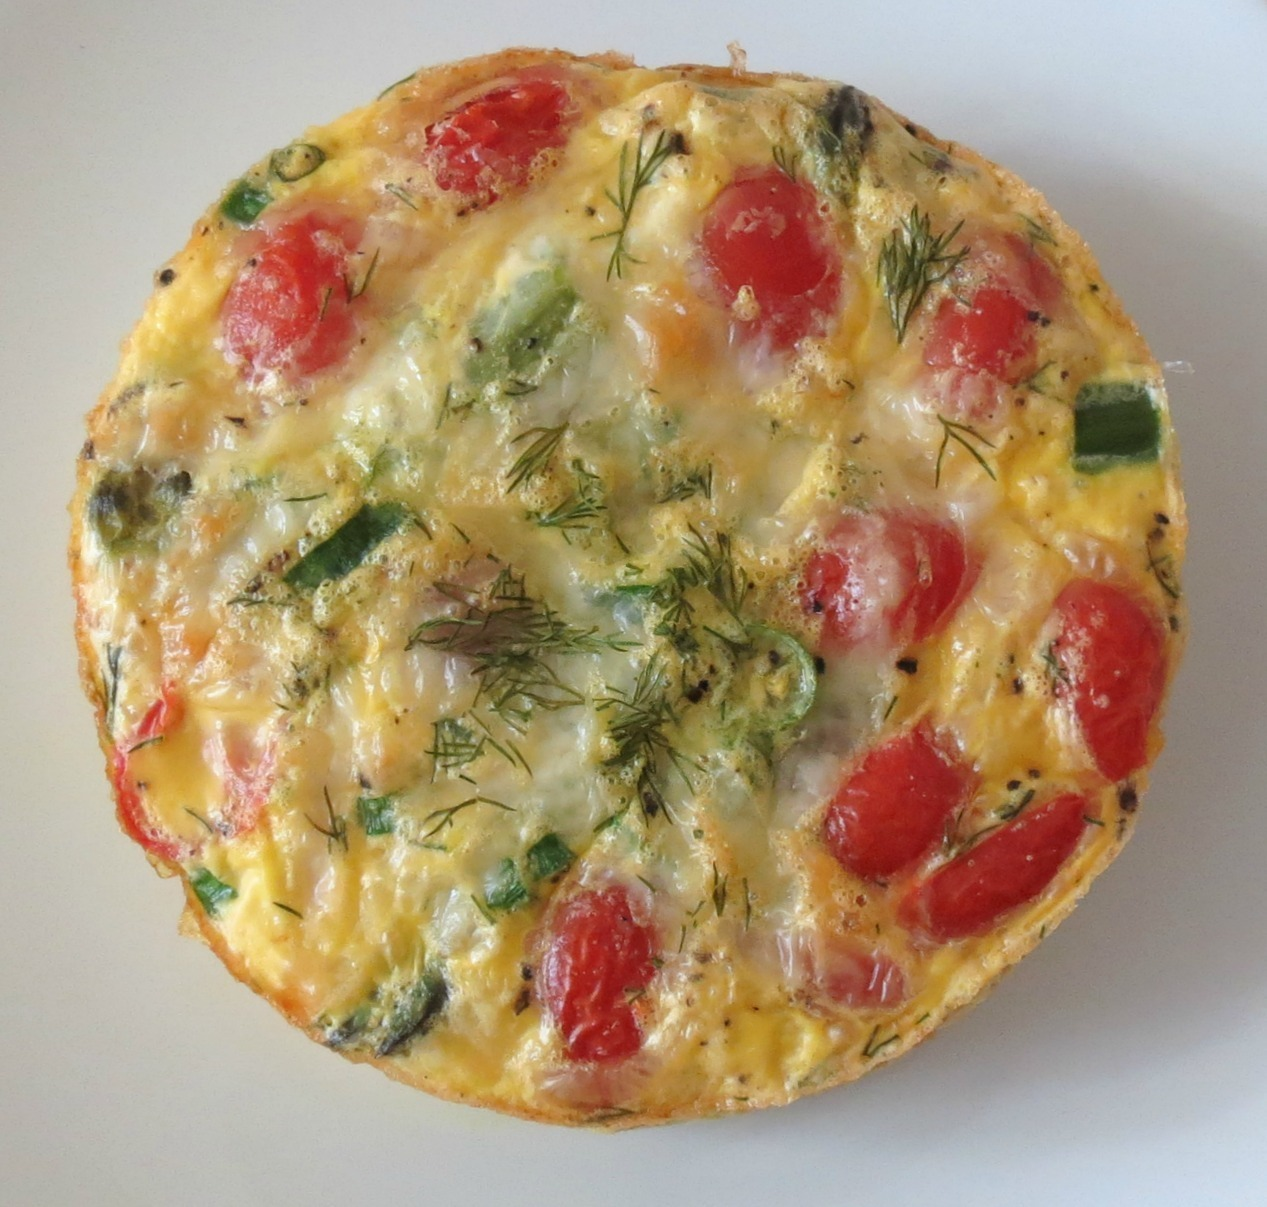 Asparagus,Tomato and Dill Egg Bake | Peanut Butter and Peppers